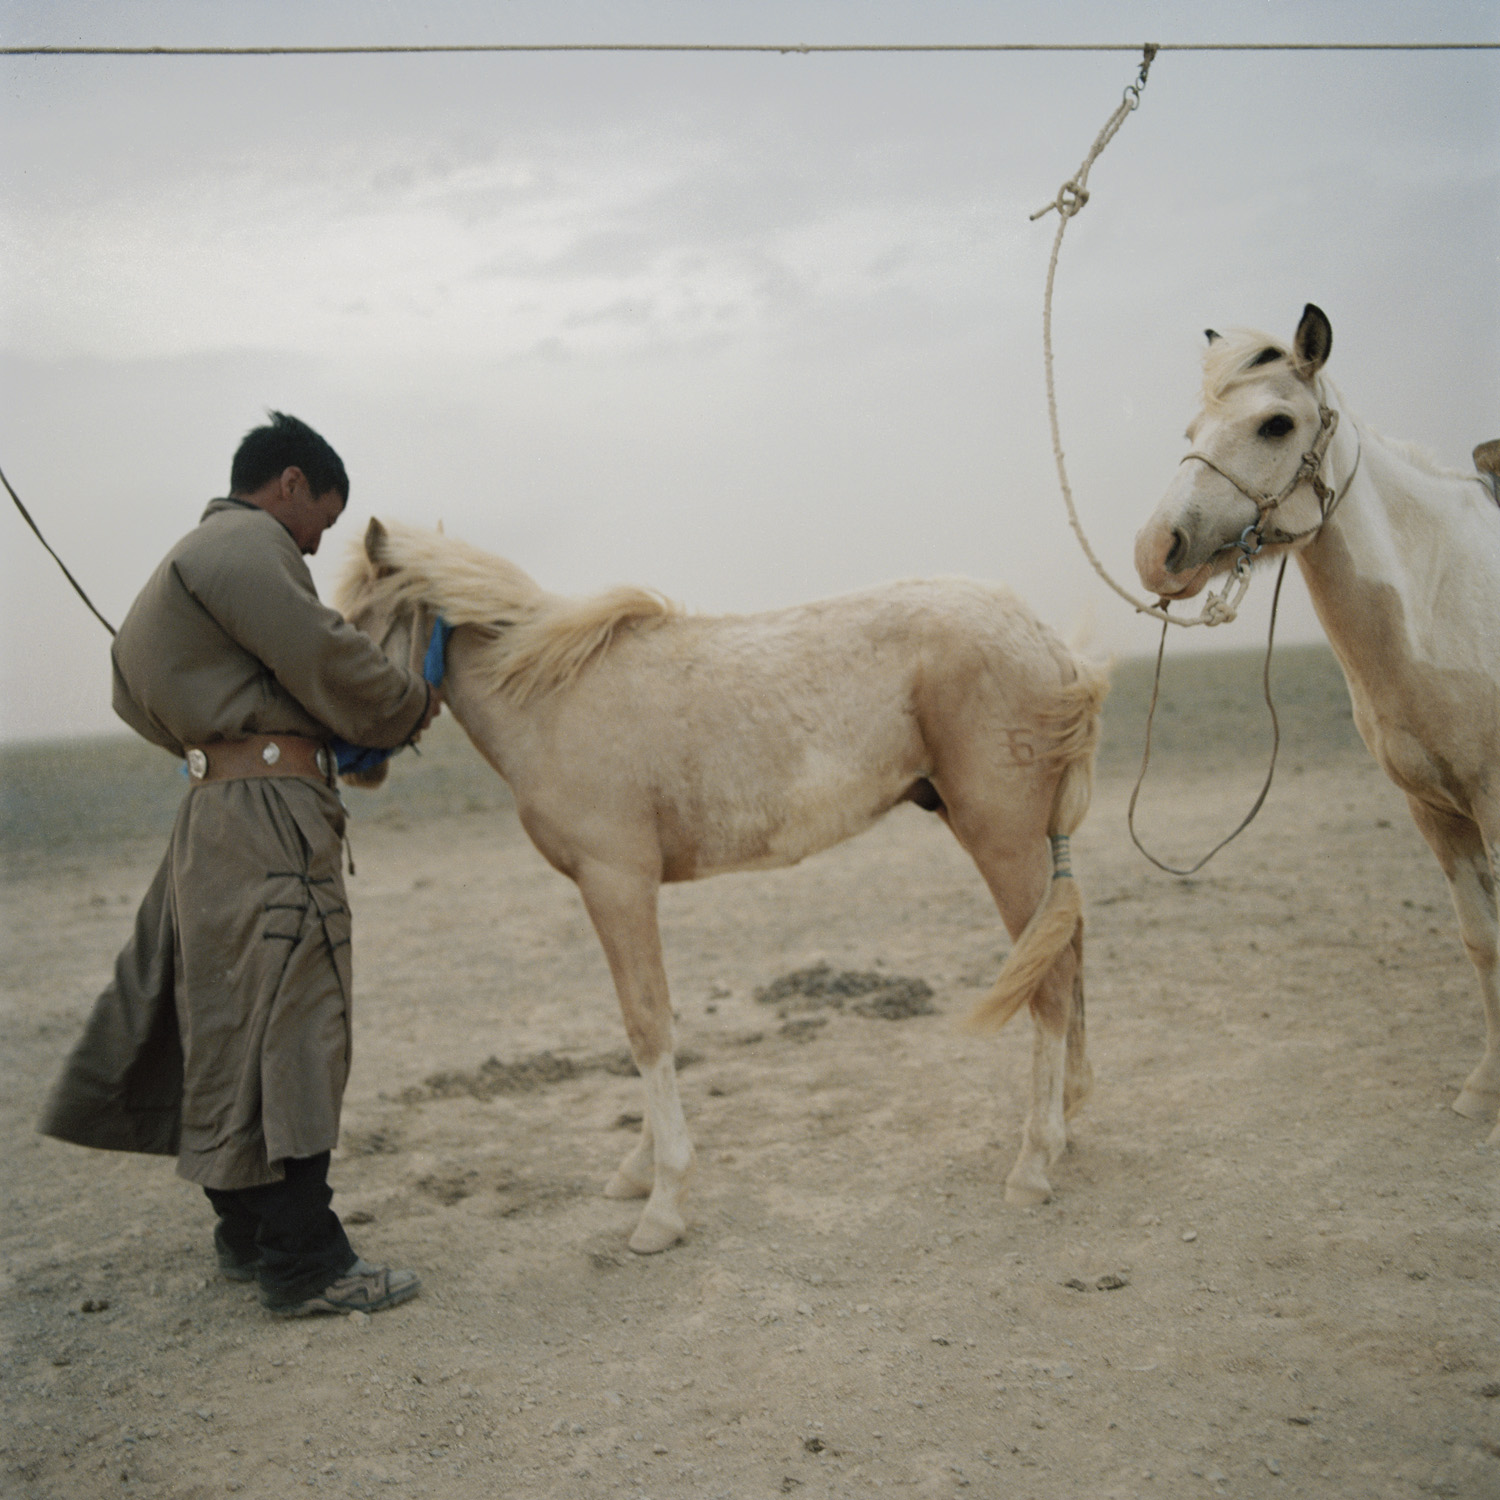 Tuvshinbayar ties up his horses to prevent them from escaping during a storm. Mongolia, Gobi, Omongovi, 2012.